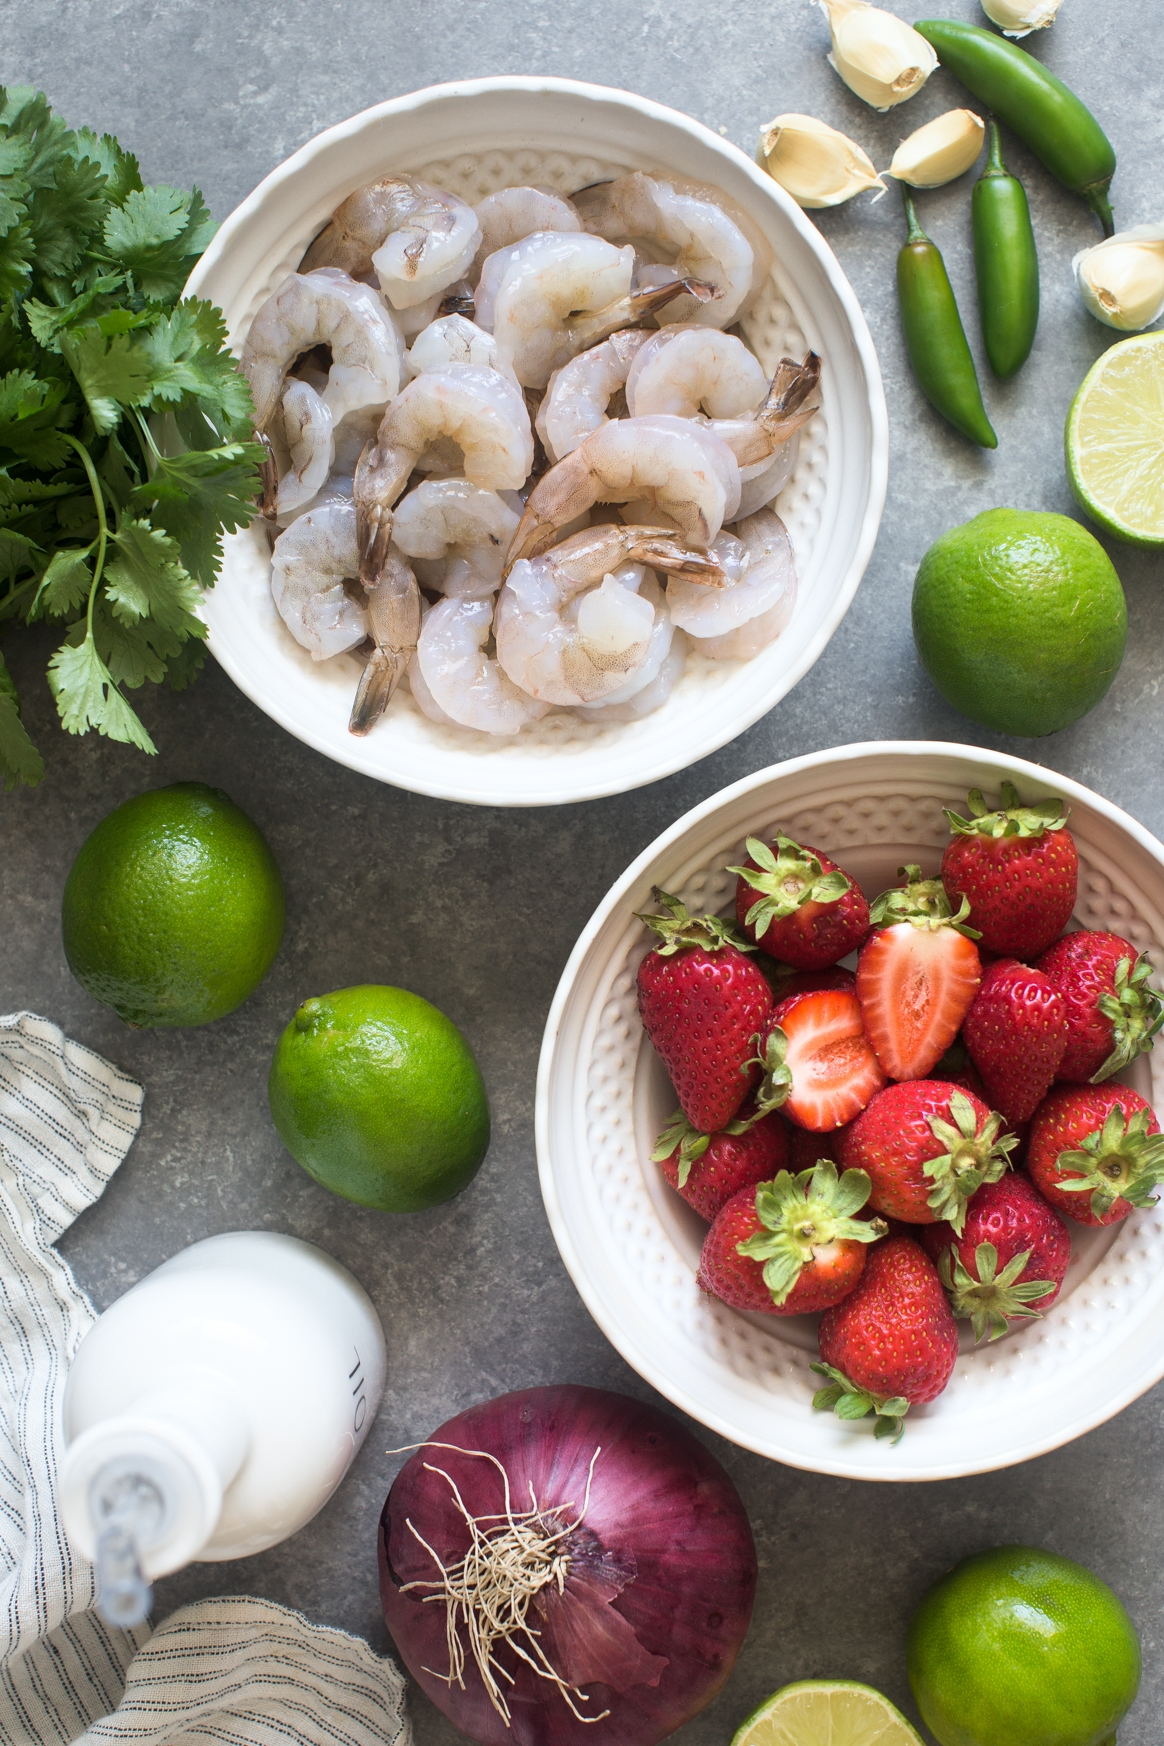 Shrimp Tacos with Strawberry Salsa Ingredients